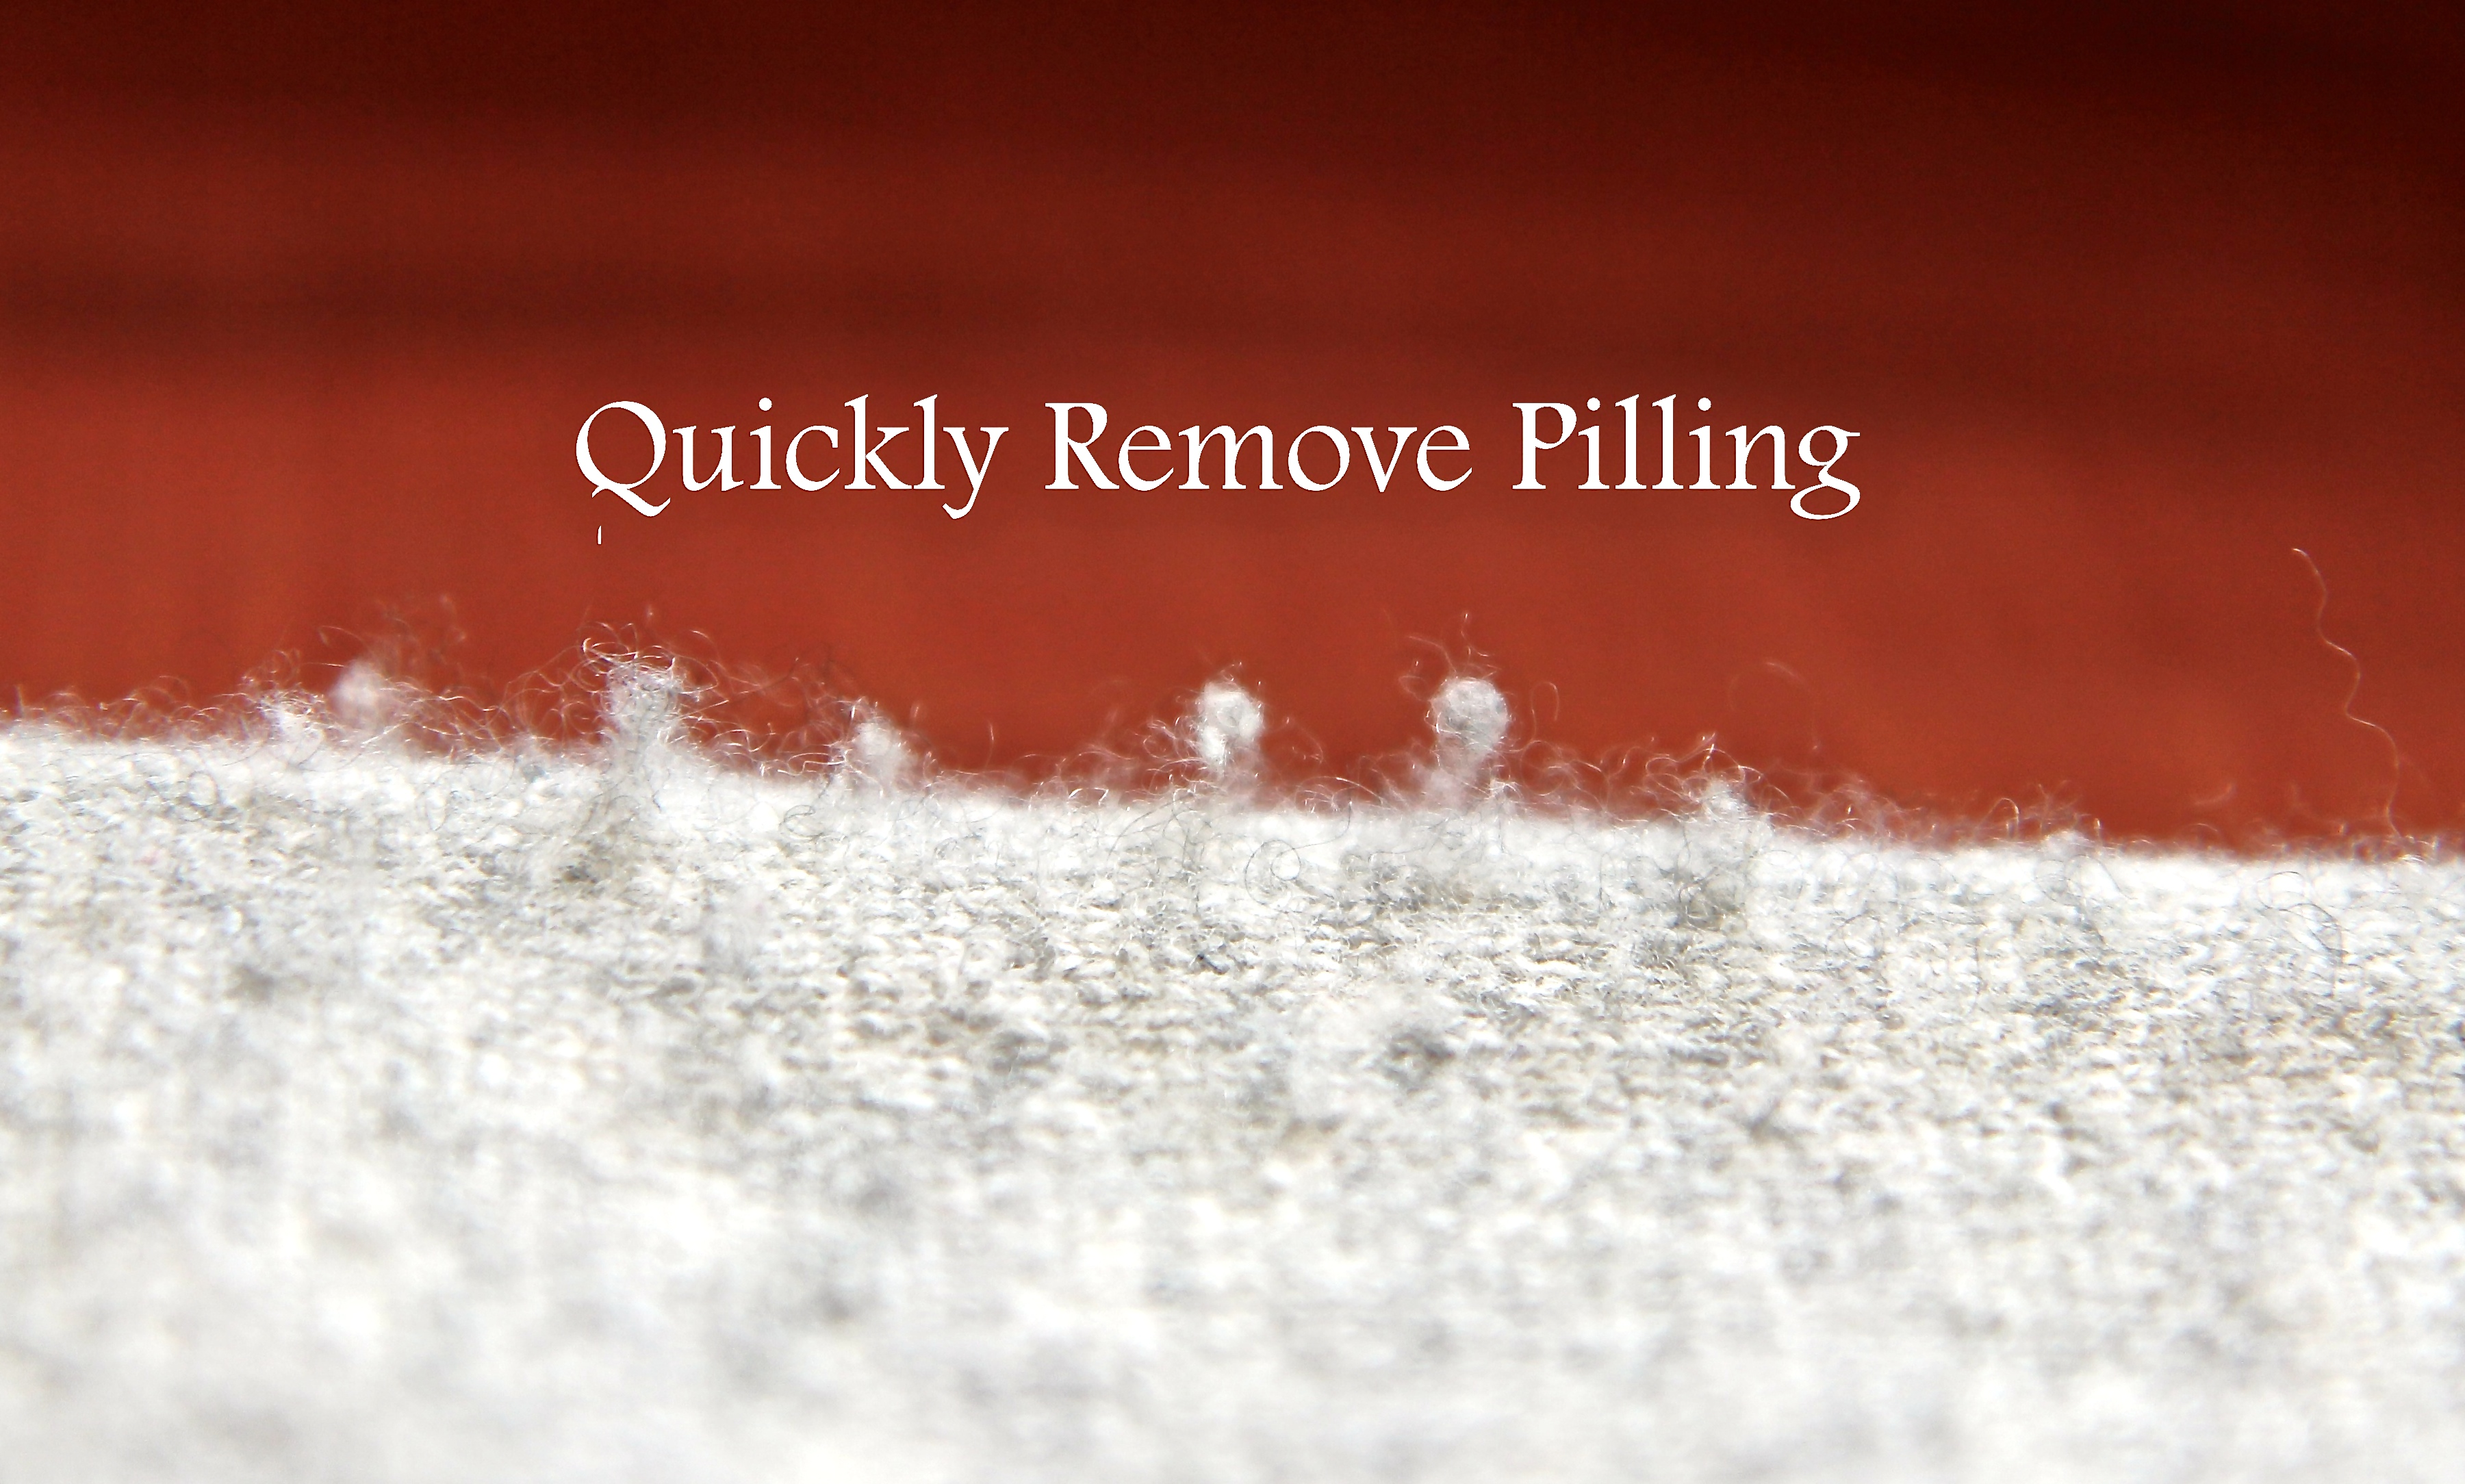 Quickly Remove Fabric Pills